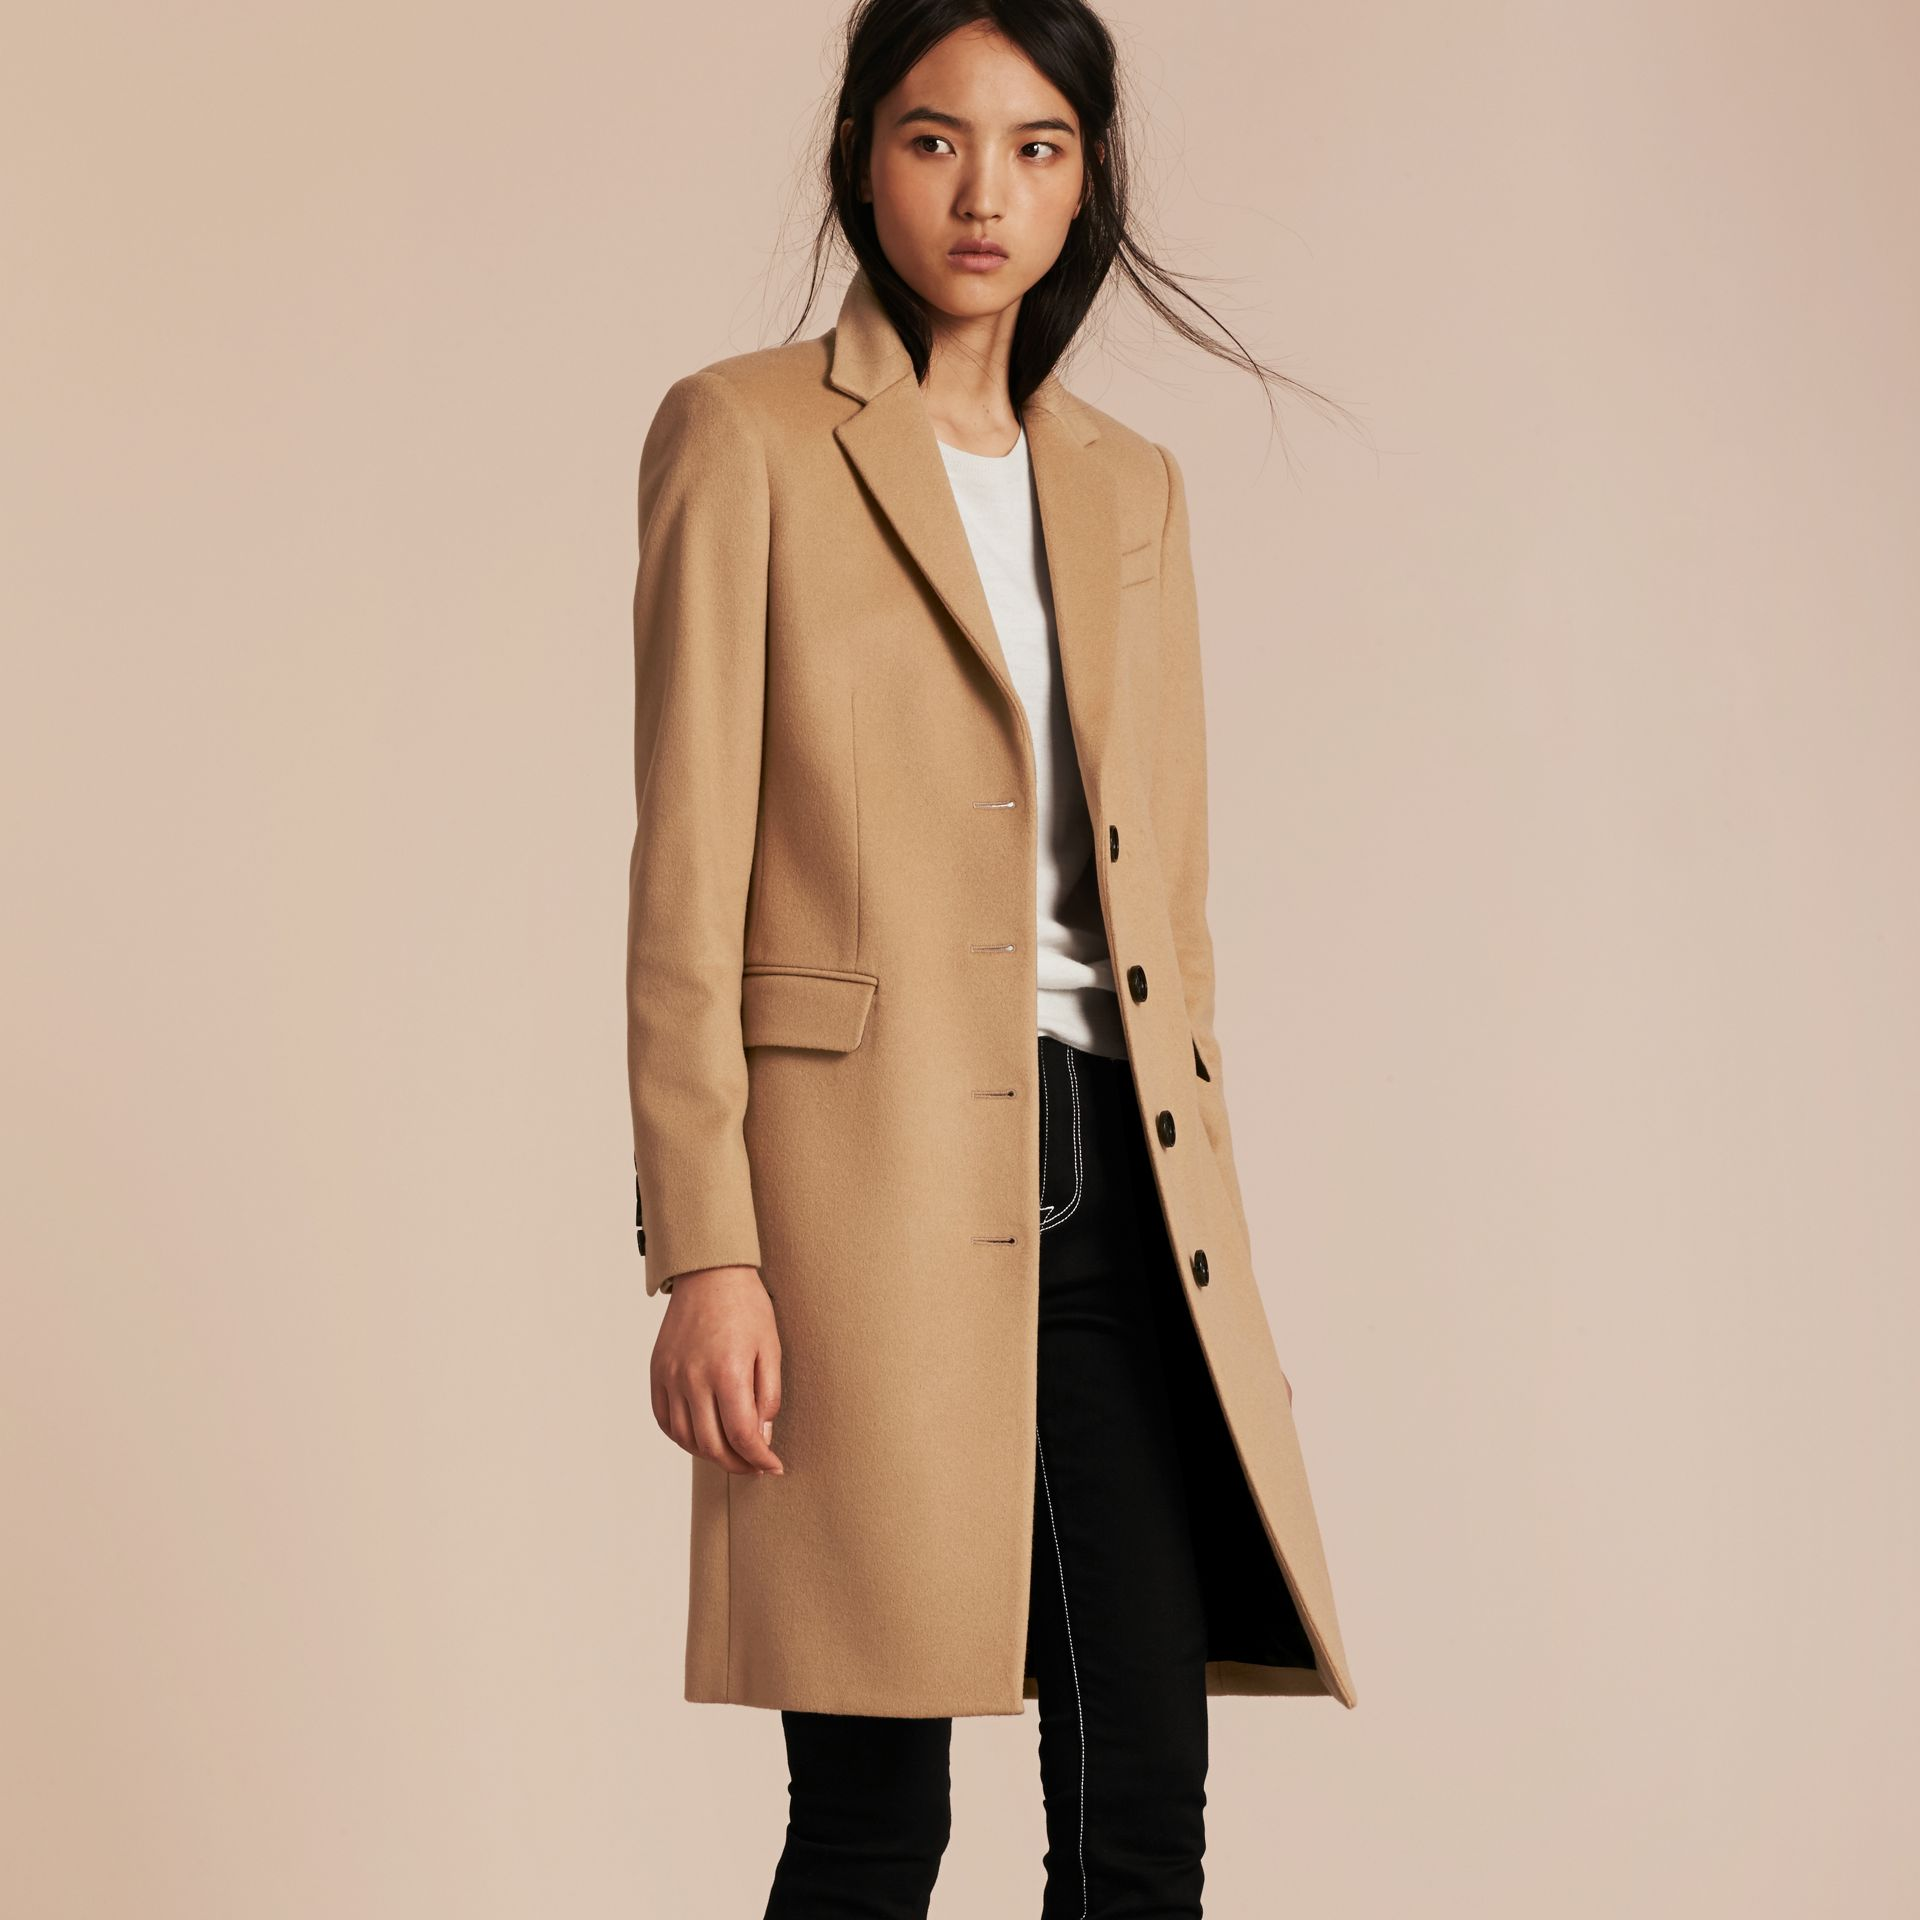 Camel Tailored Wool Cashmere Coat Camel - gallery image 6